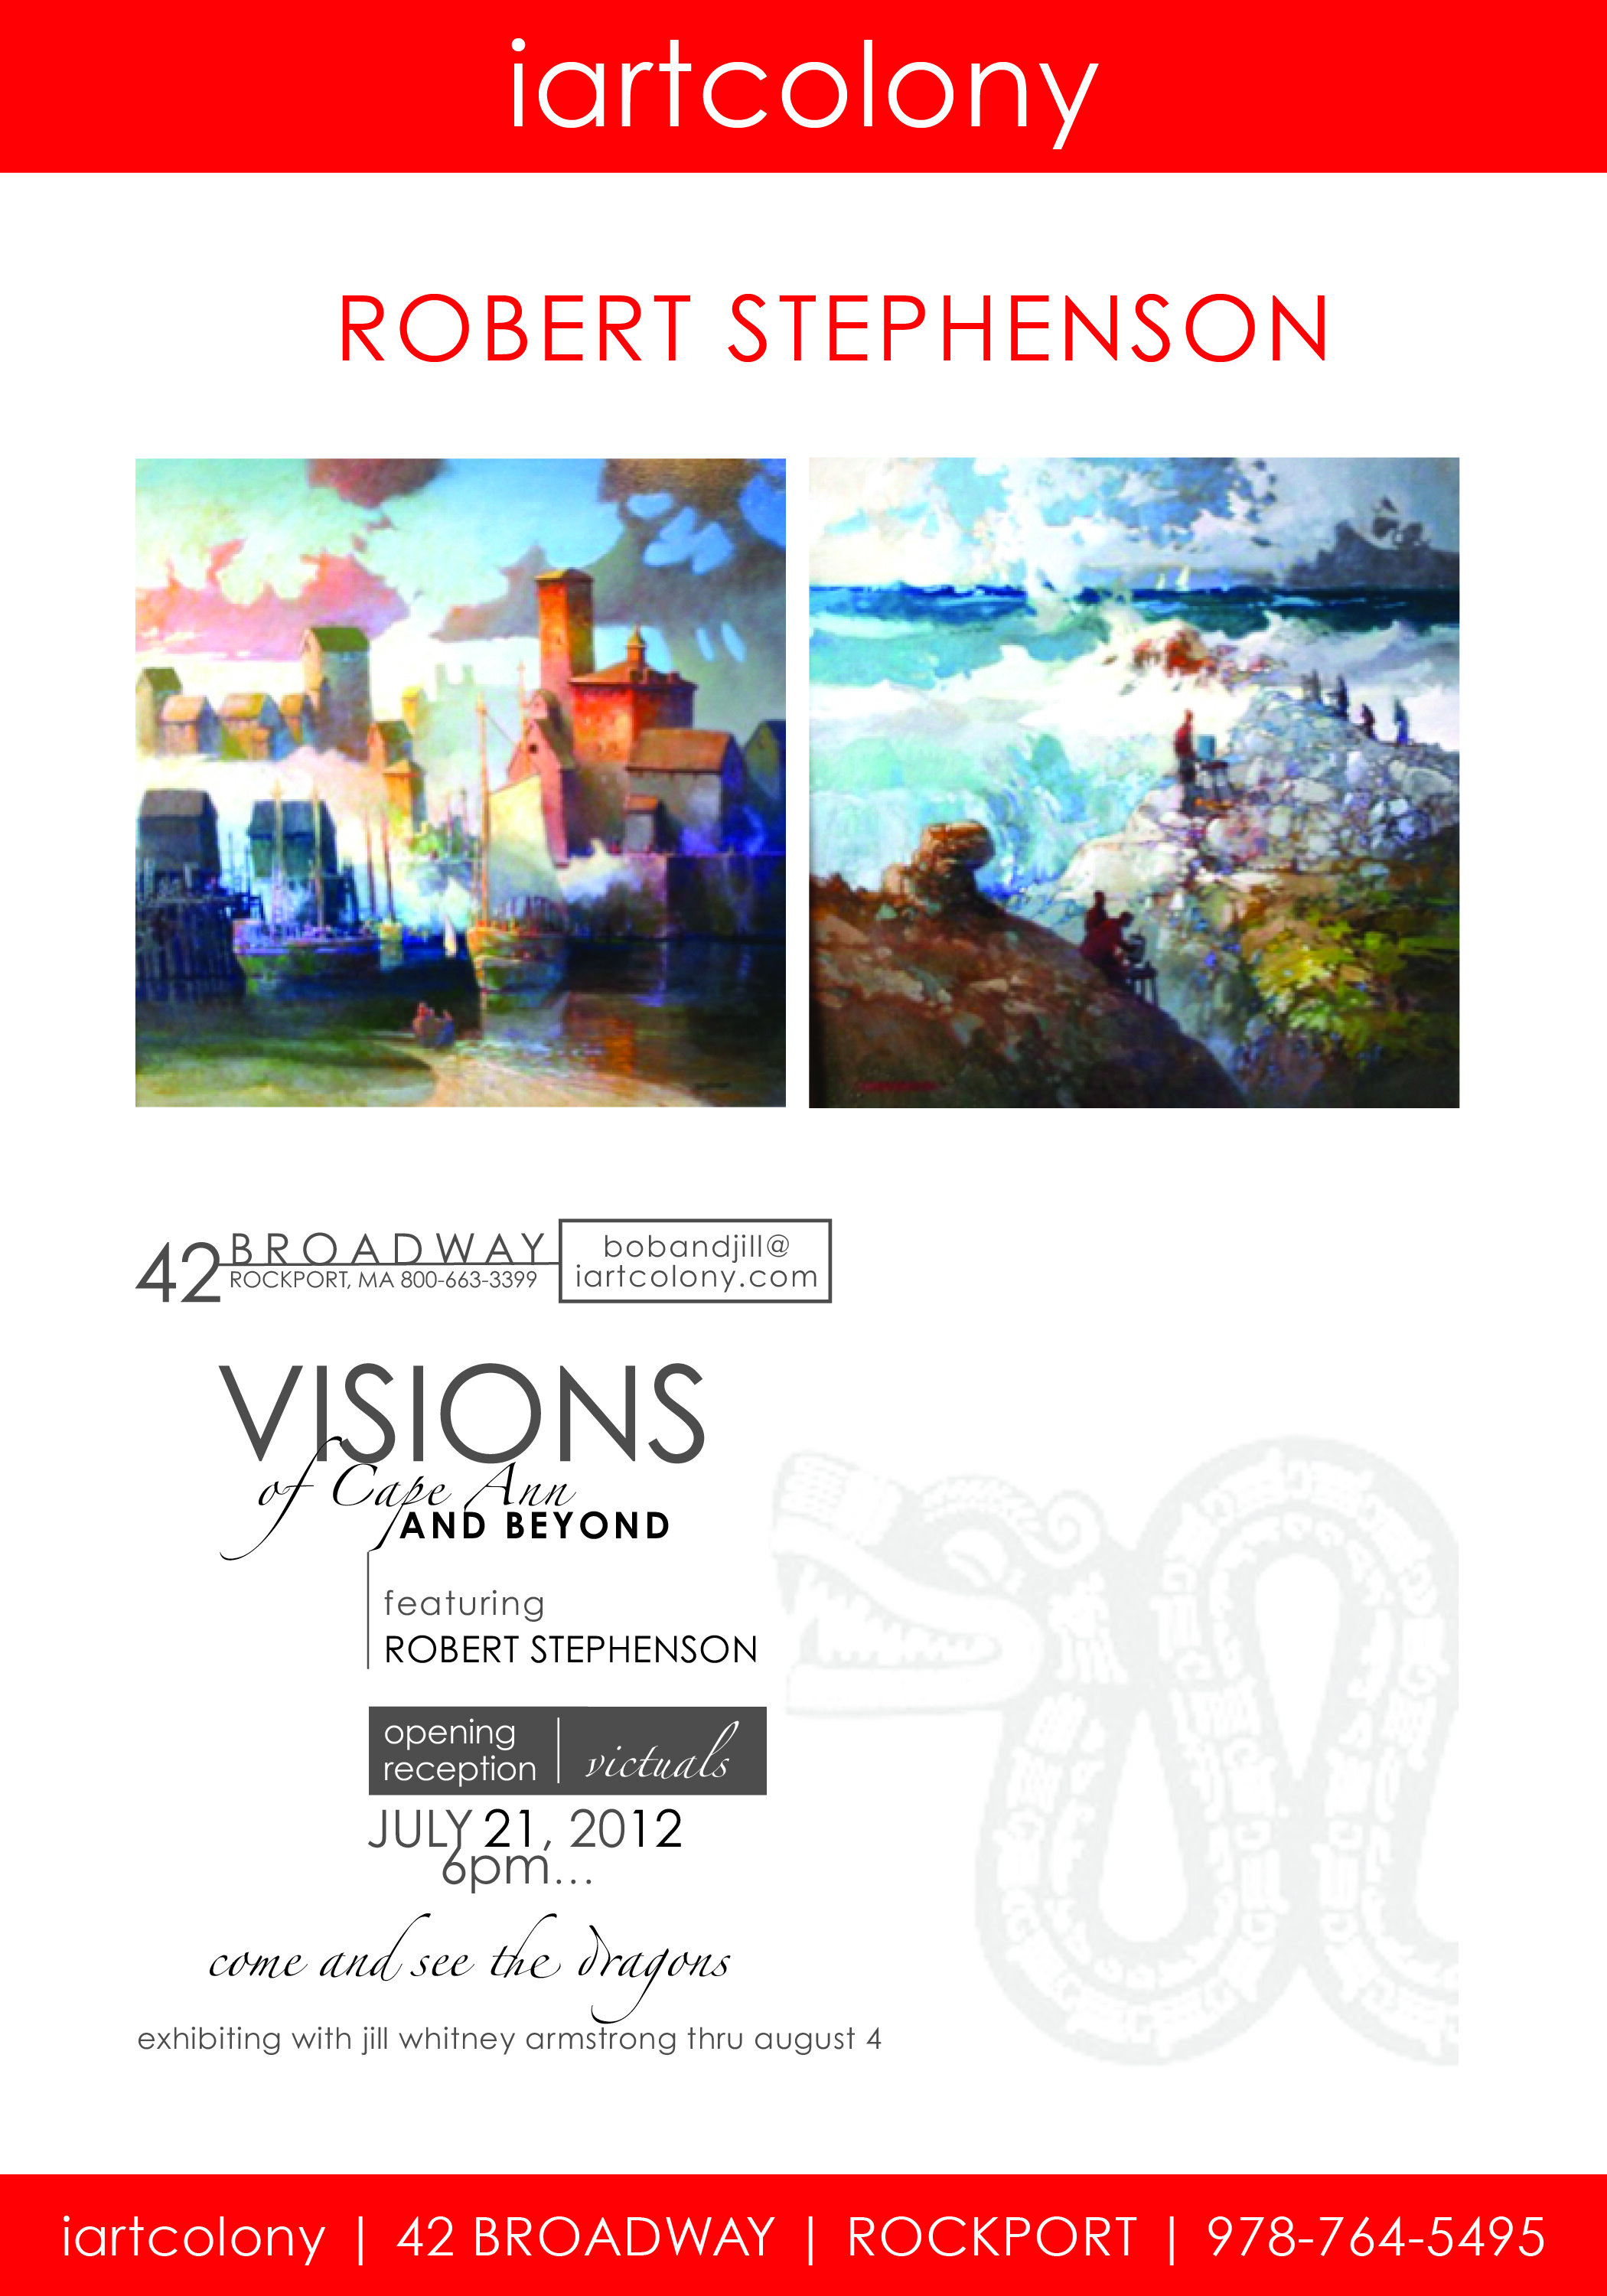 STEPHENSON - visions of cape ann - flyer.jpg